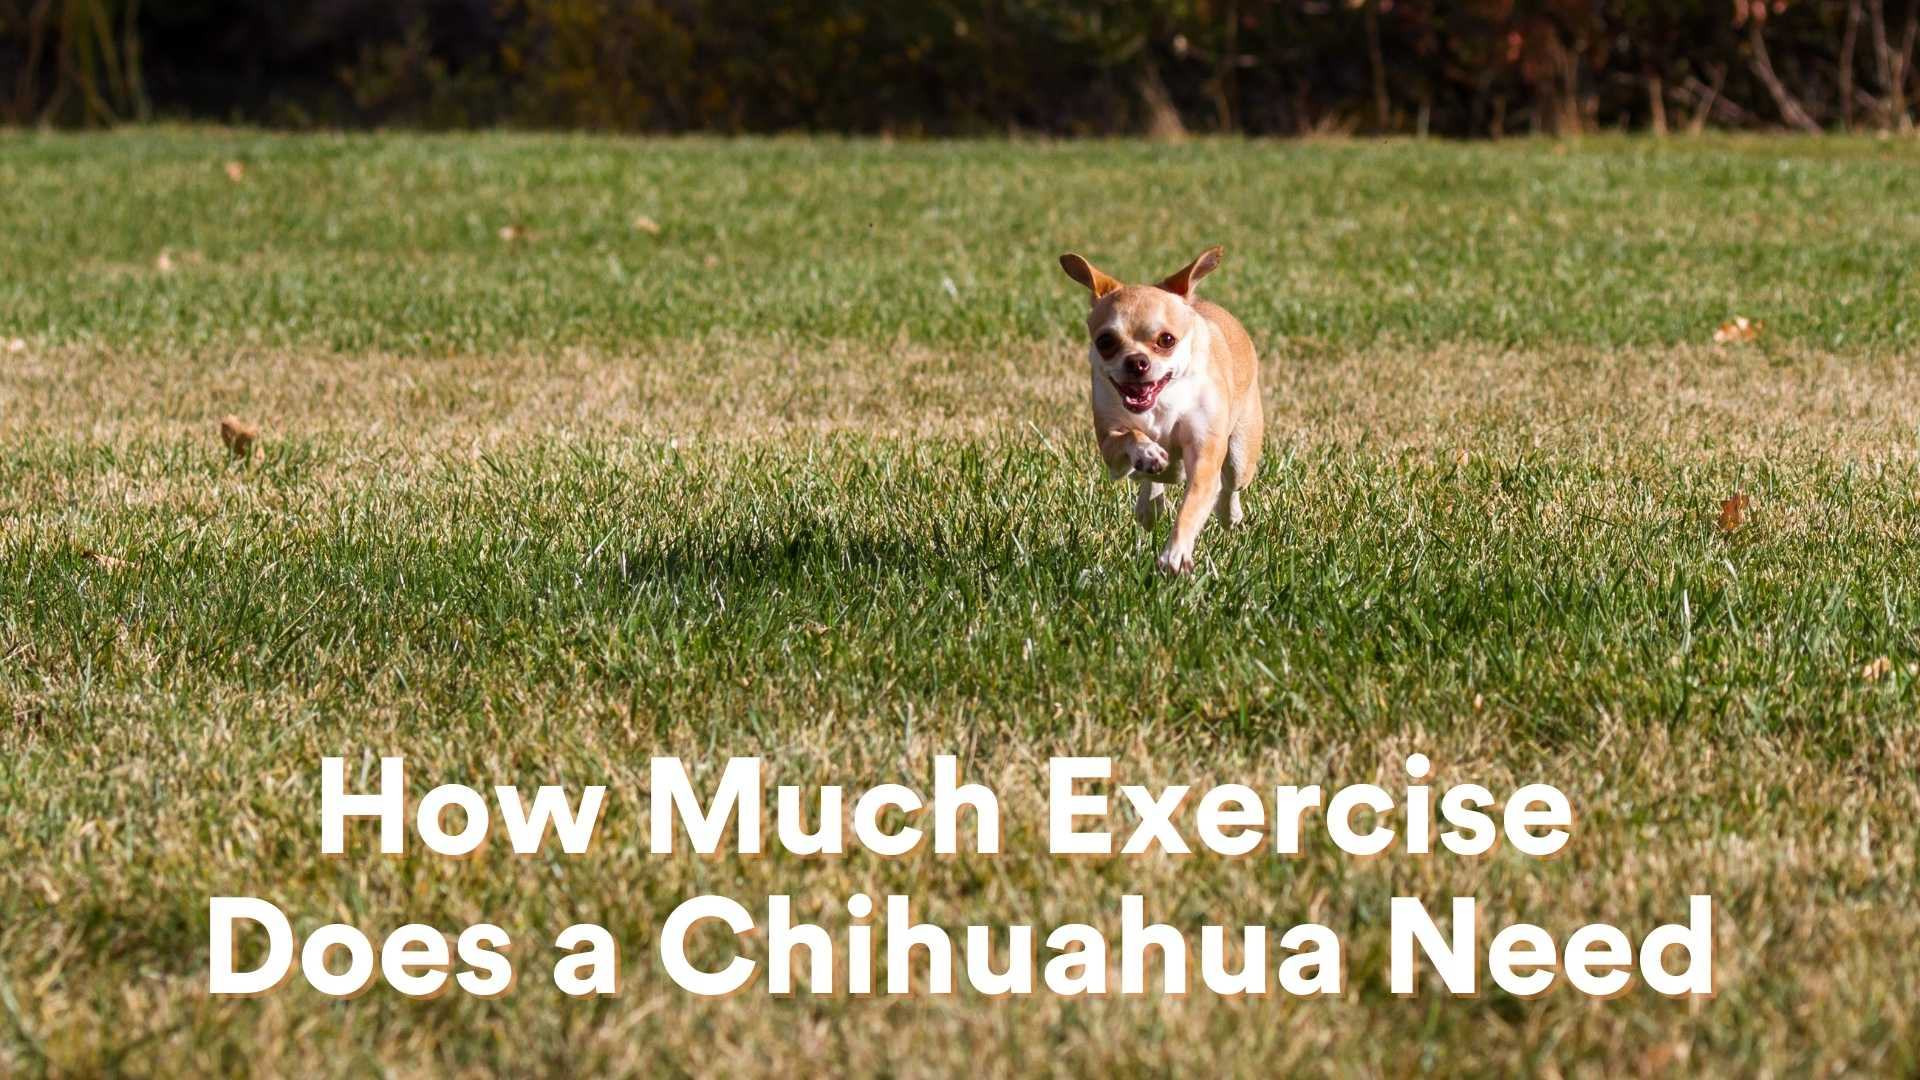 How Much Exercise Does a Chihuahua Need